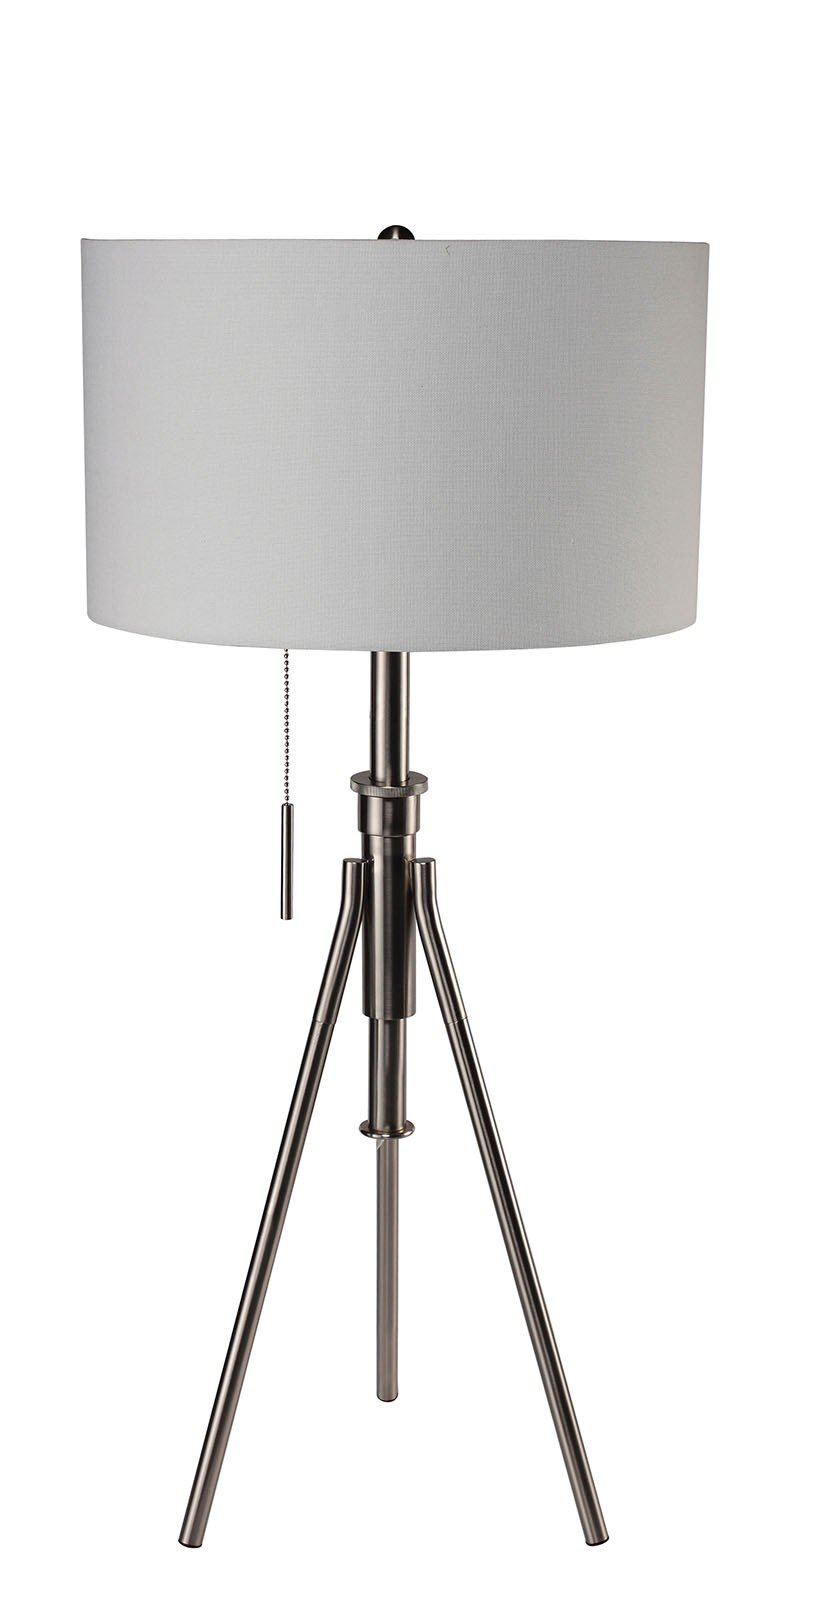 Furniture of America L731171T-SV Zaya Extendable Silver Table Lamp Miscellaneous-Others